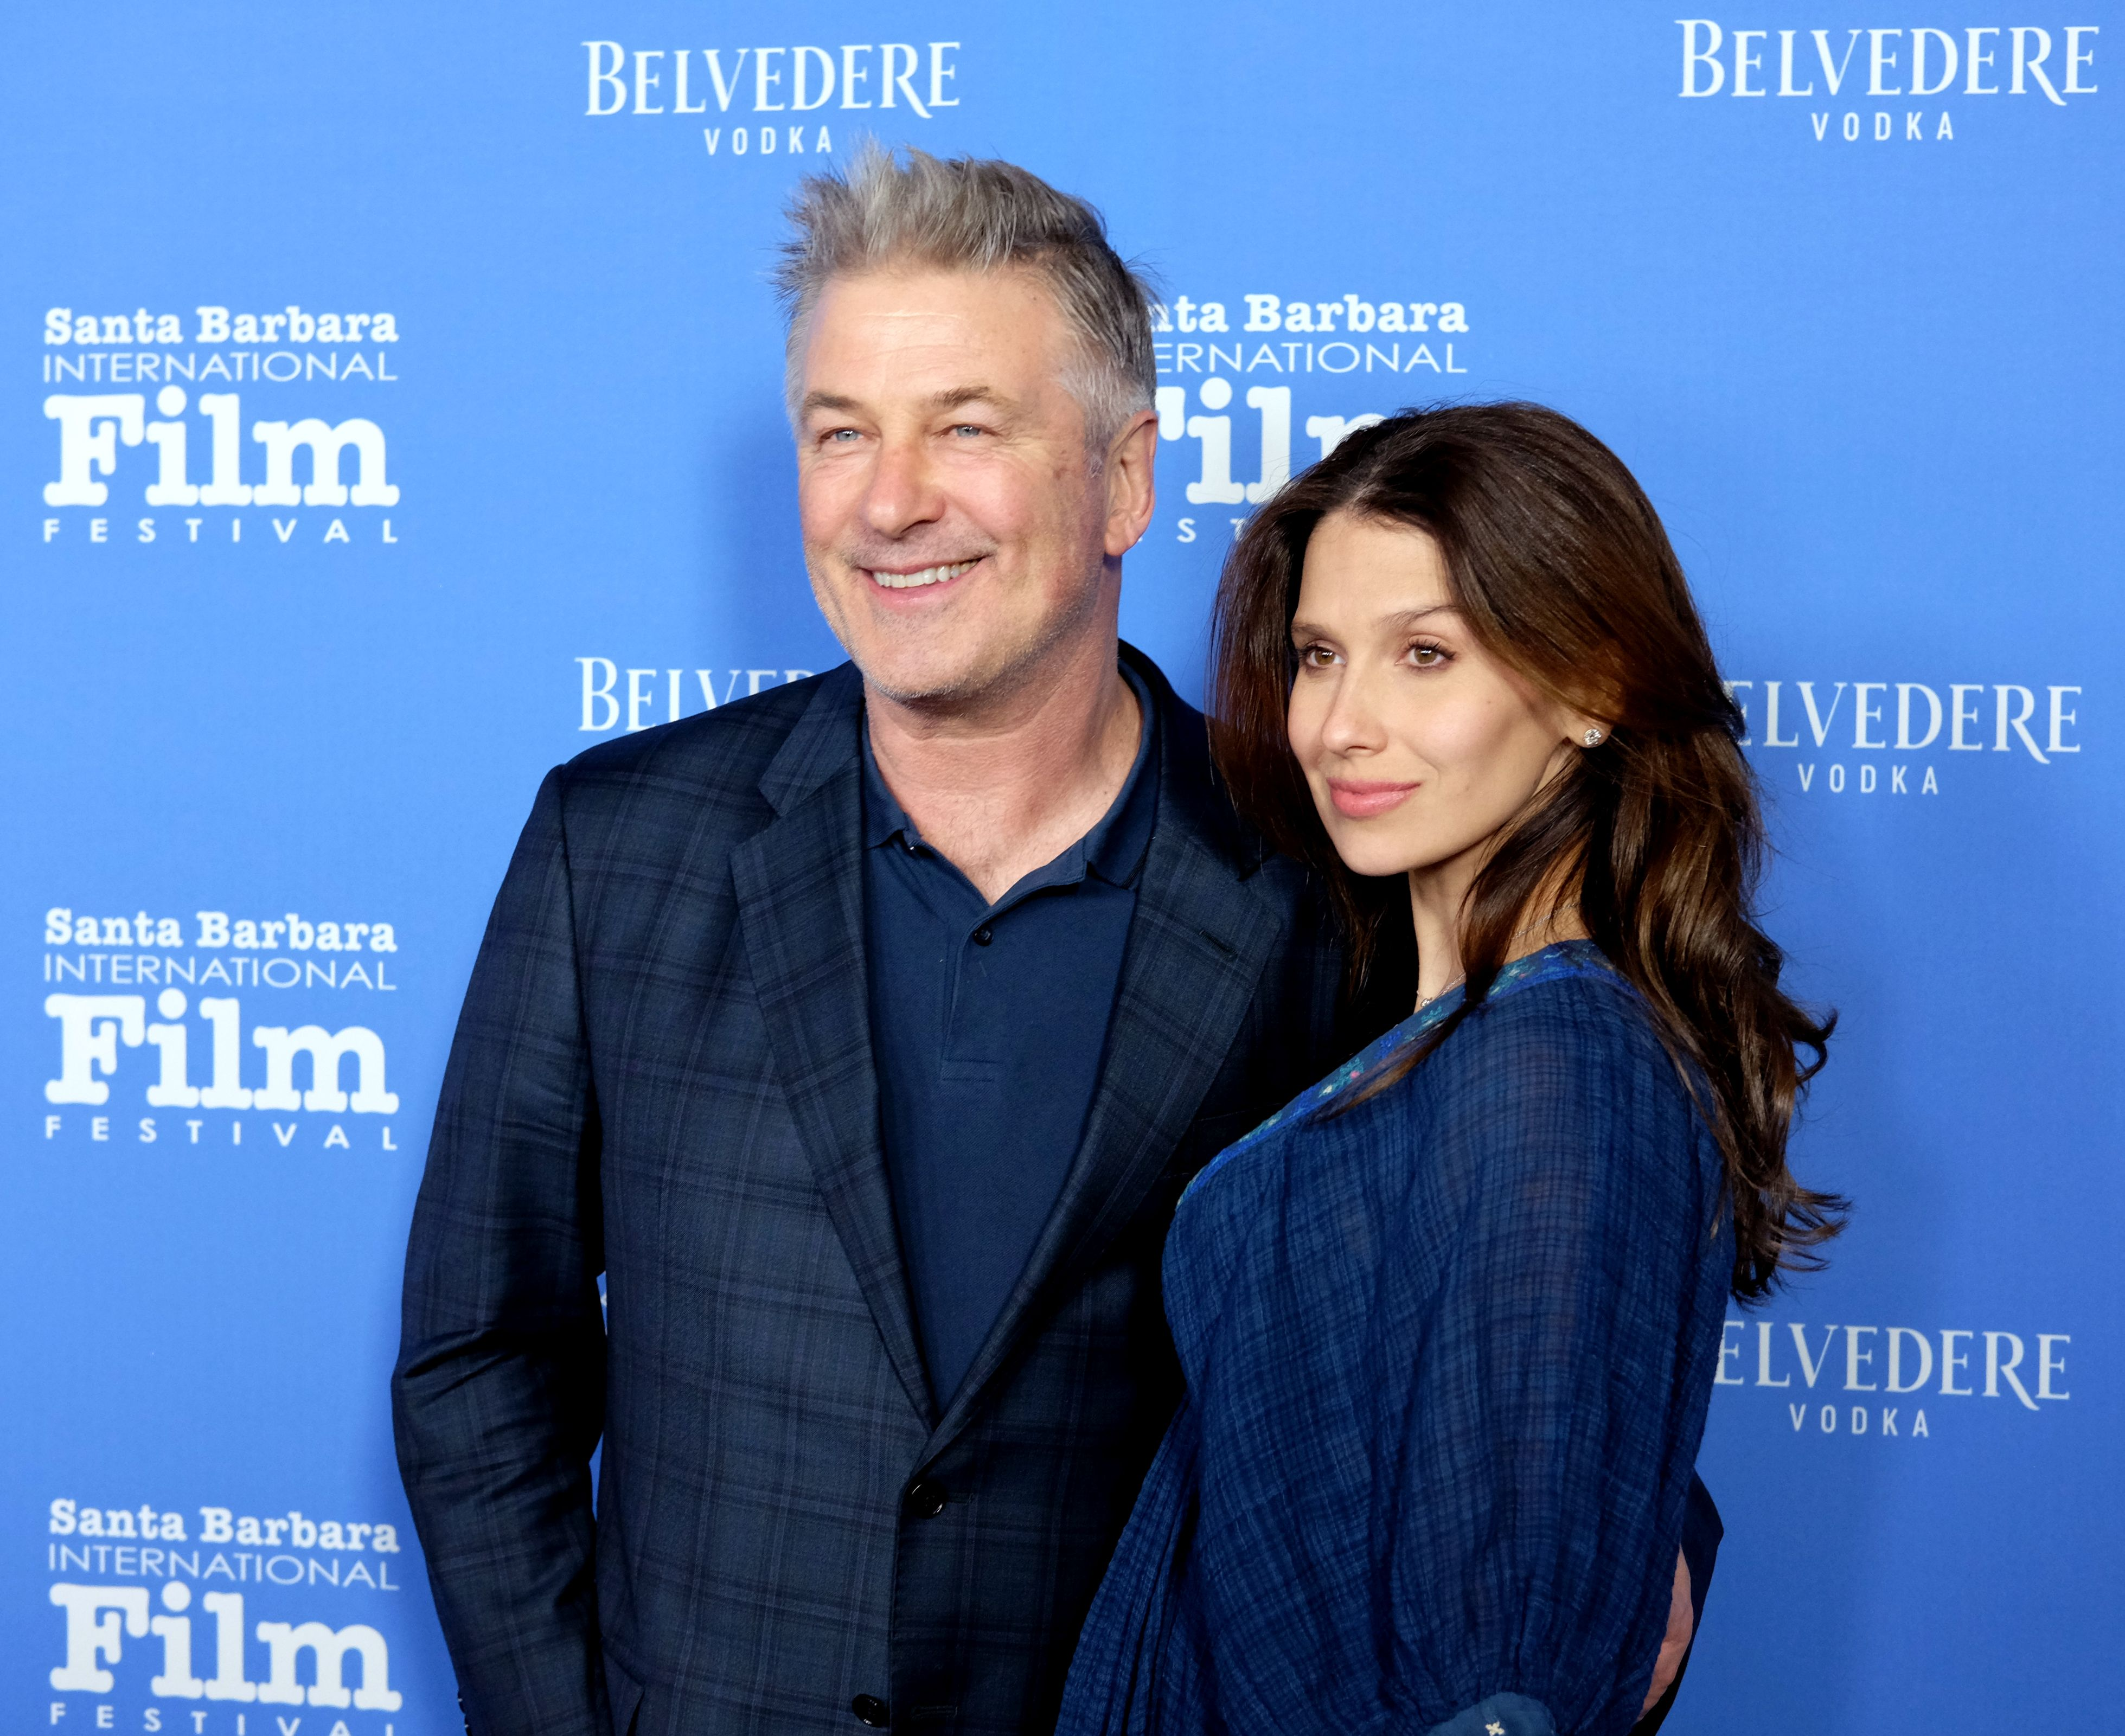 """Alec Baldwin and Hilaria Baldwin at the Opening Night Film """"The Public"""" Presented by Belvedere Vodka during the 33rd Santa Barbara International Film Festival at Arlington Theatre on January 31, 2018 in Santa Barbara, California.   Source: Getty Images"""